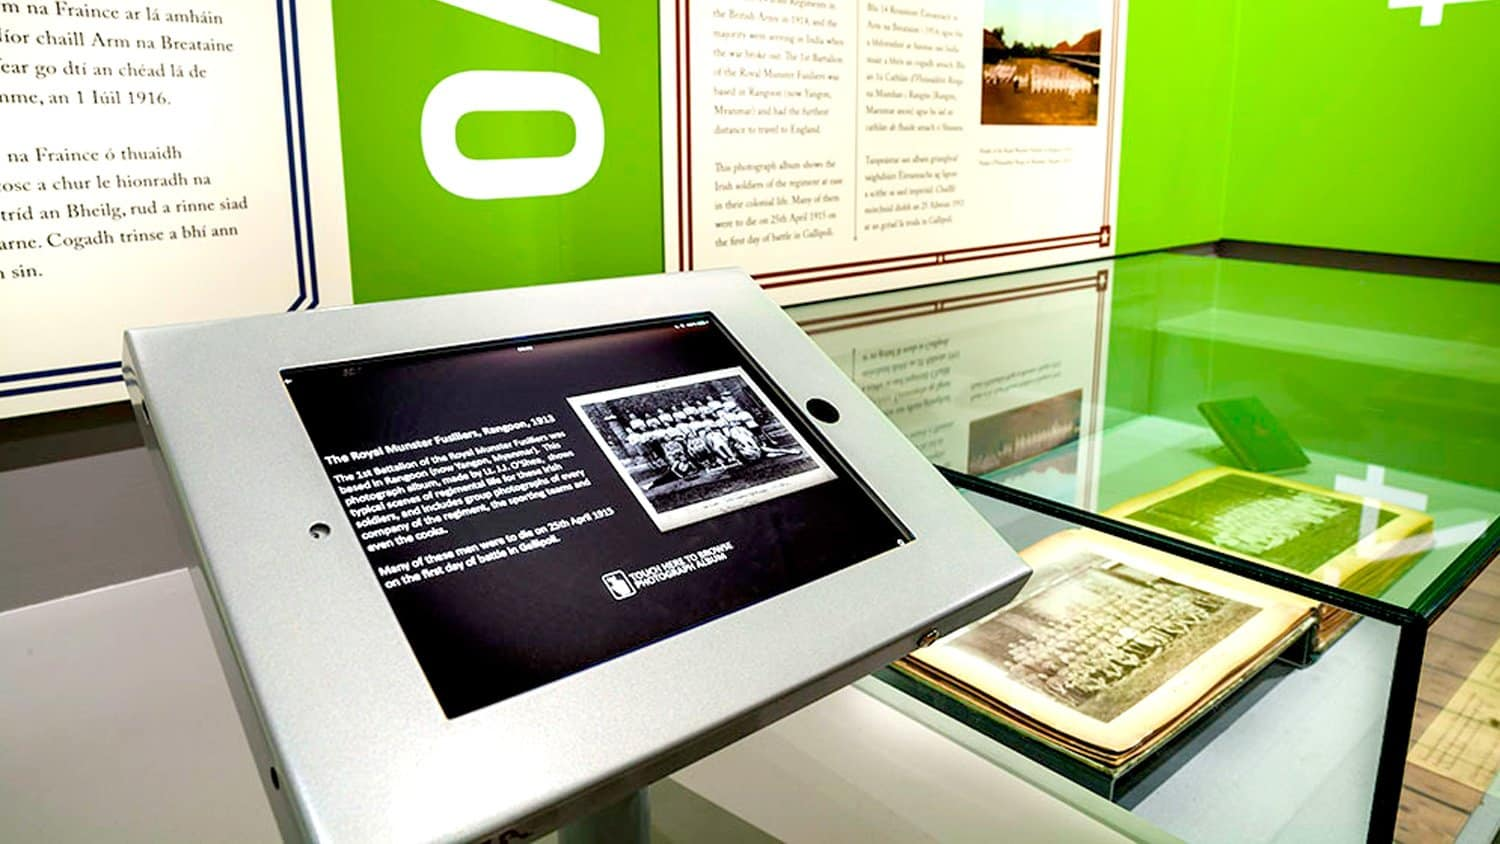 Ipad Bespoke Museum Software Gallery Archive National Museum of Ireland